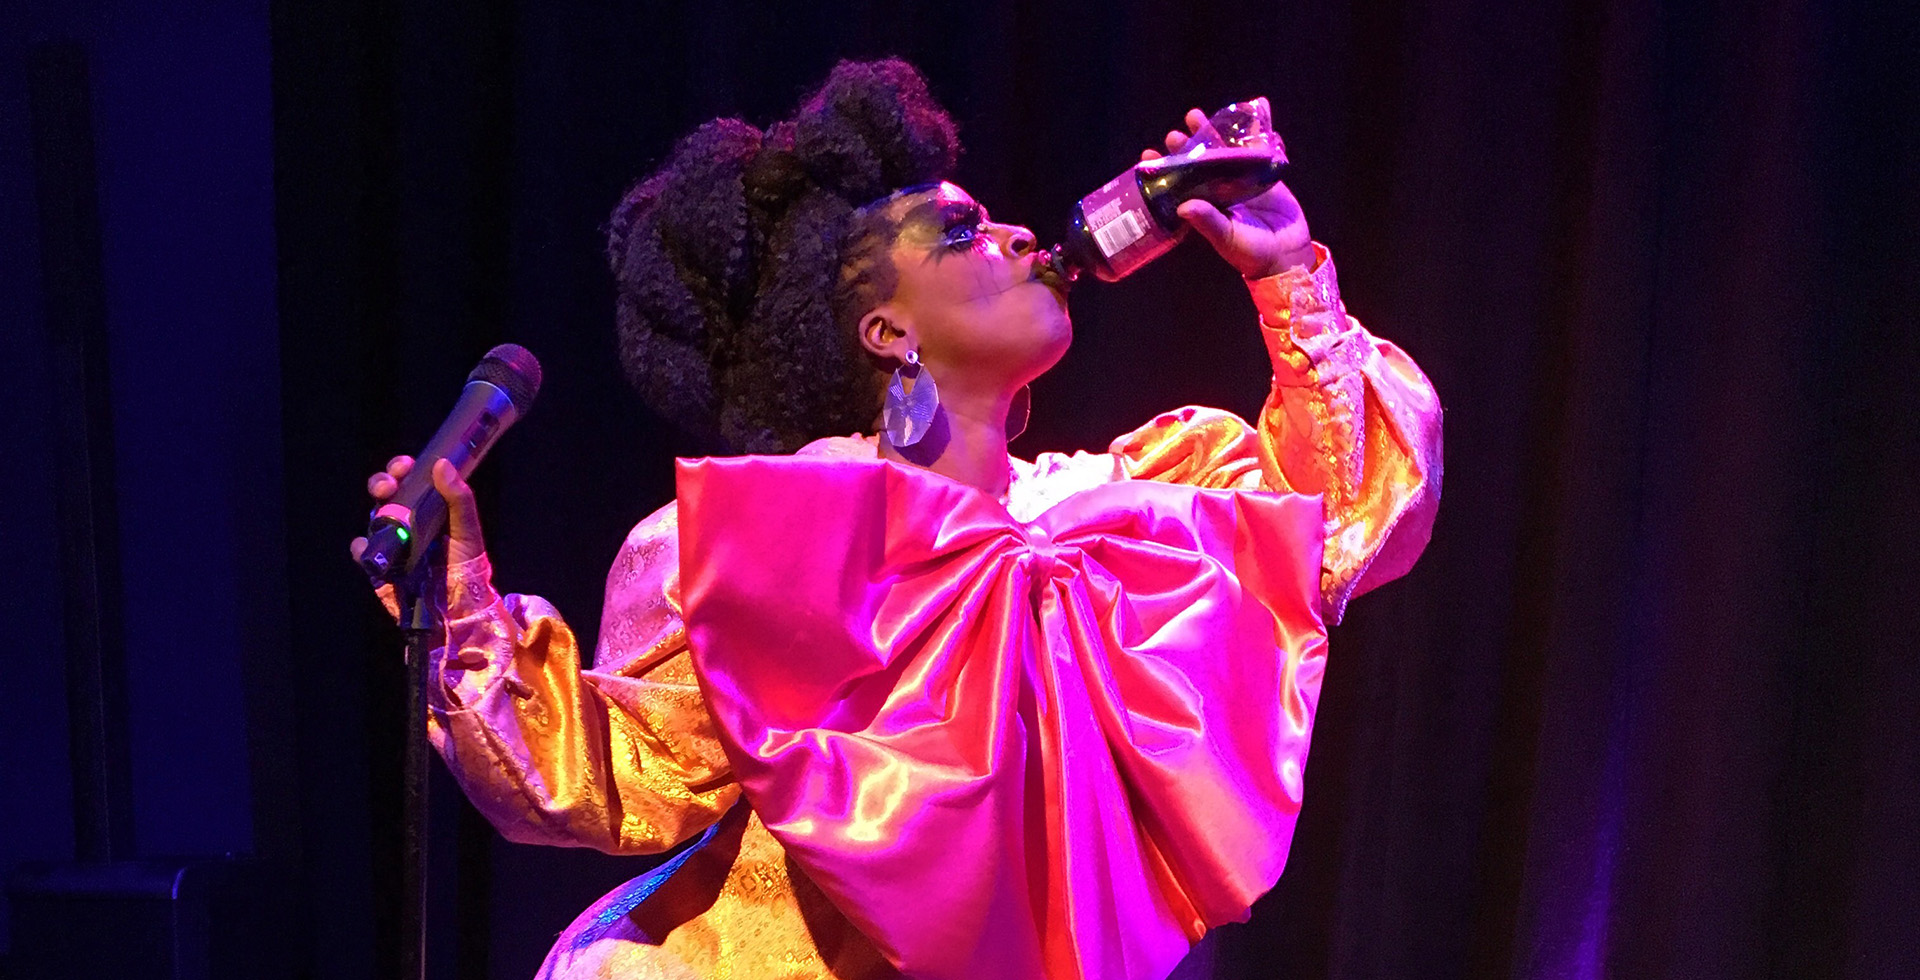 Drag Queen Black Benatar holds a mike in one hand and drinks a bottle of Dr Pepper with the other, in a sequined gold and pink dress with a giant pink bow